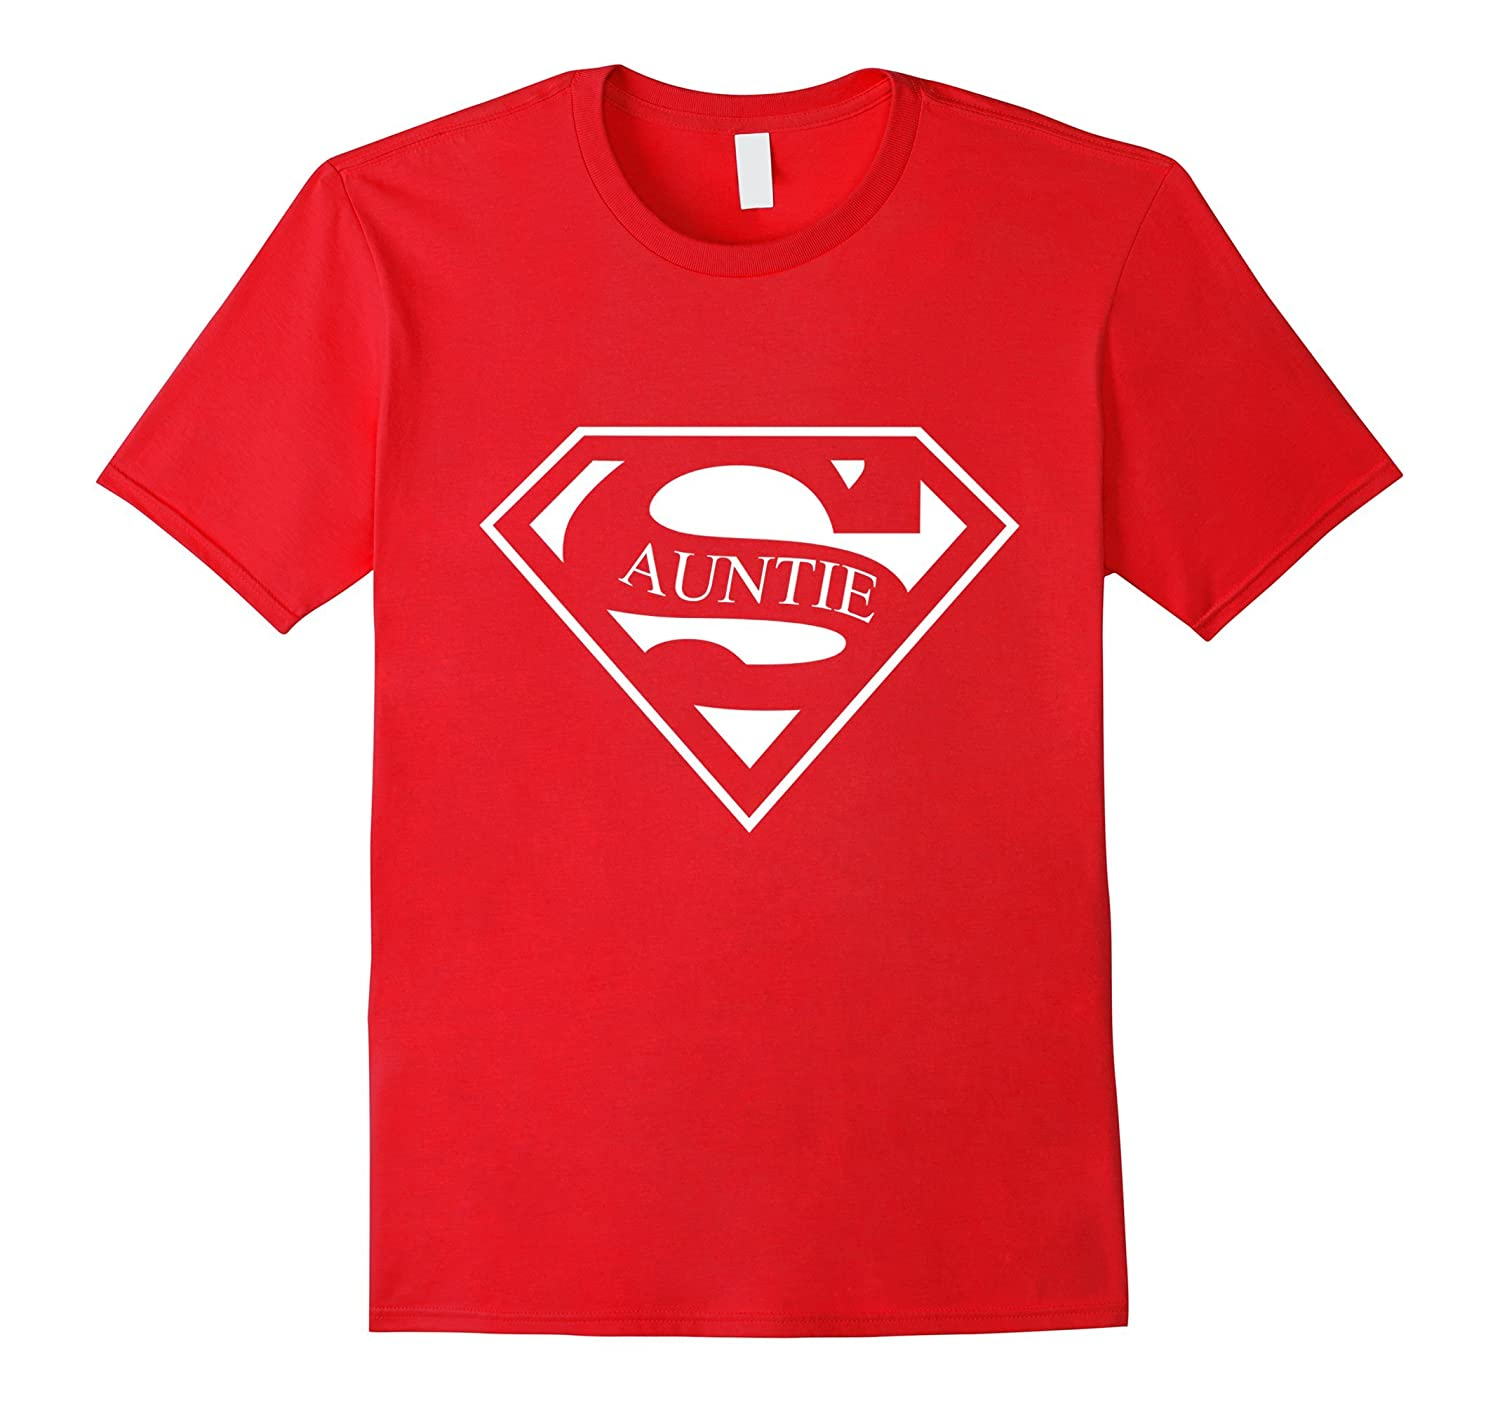 93aa1dceb Super Auntie T-Shirt – Aunt Gifts – Funny Nice-CL – Colamaga